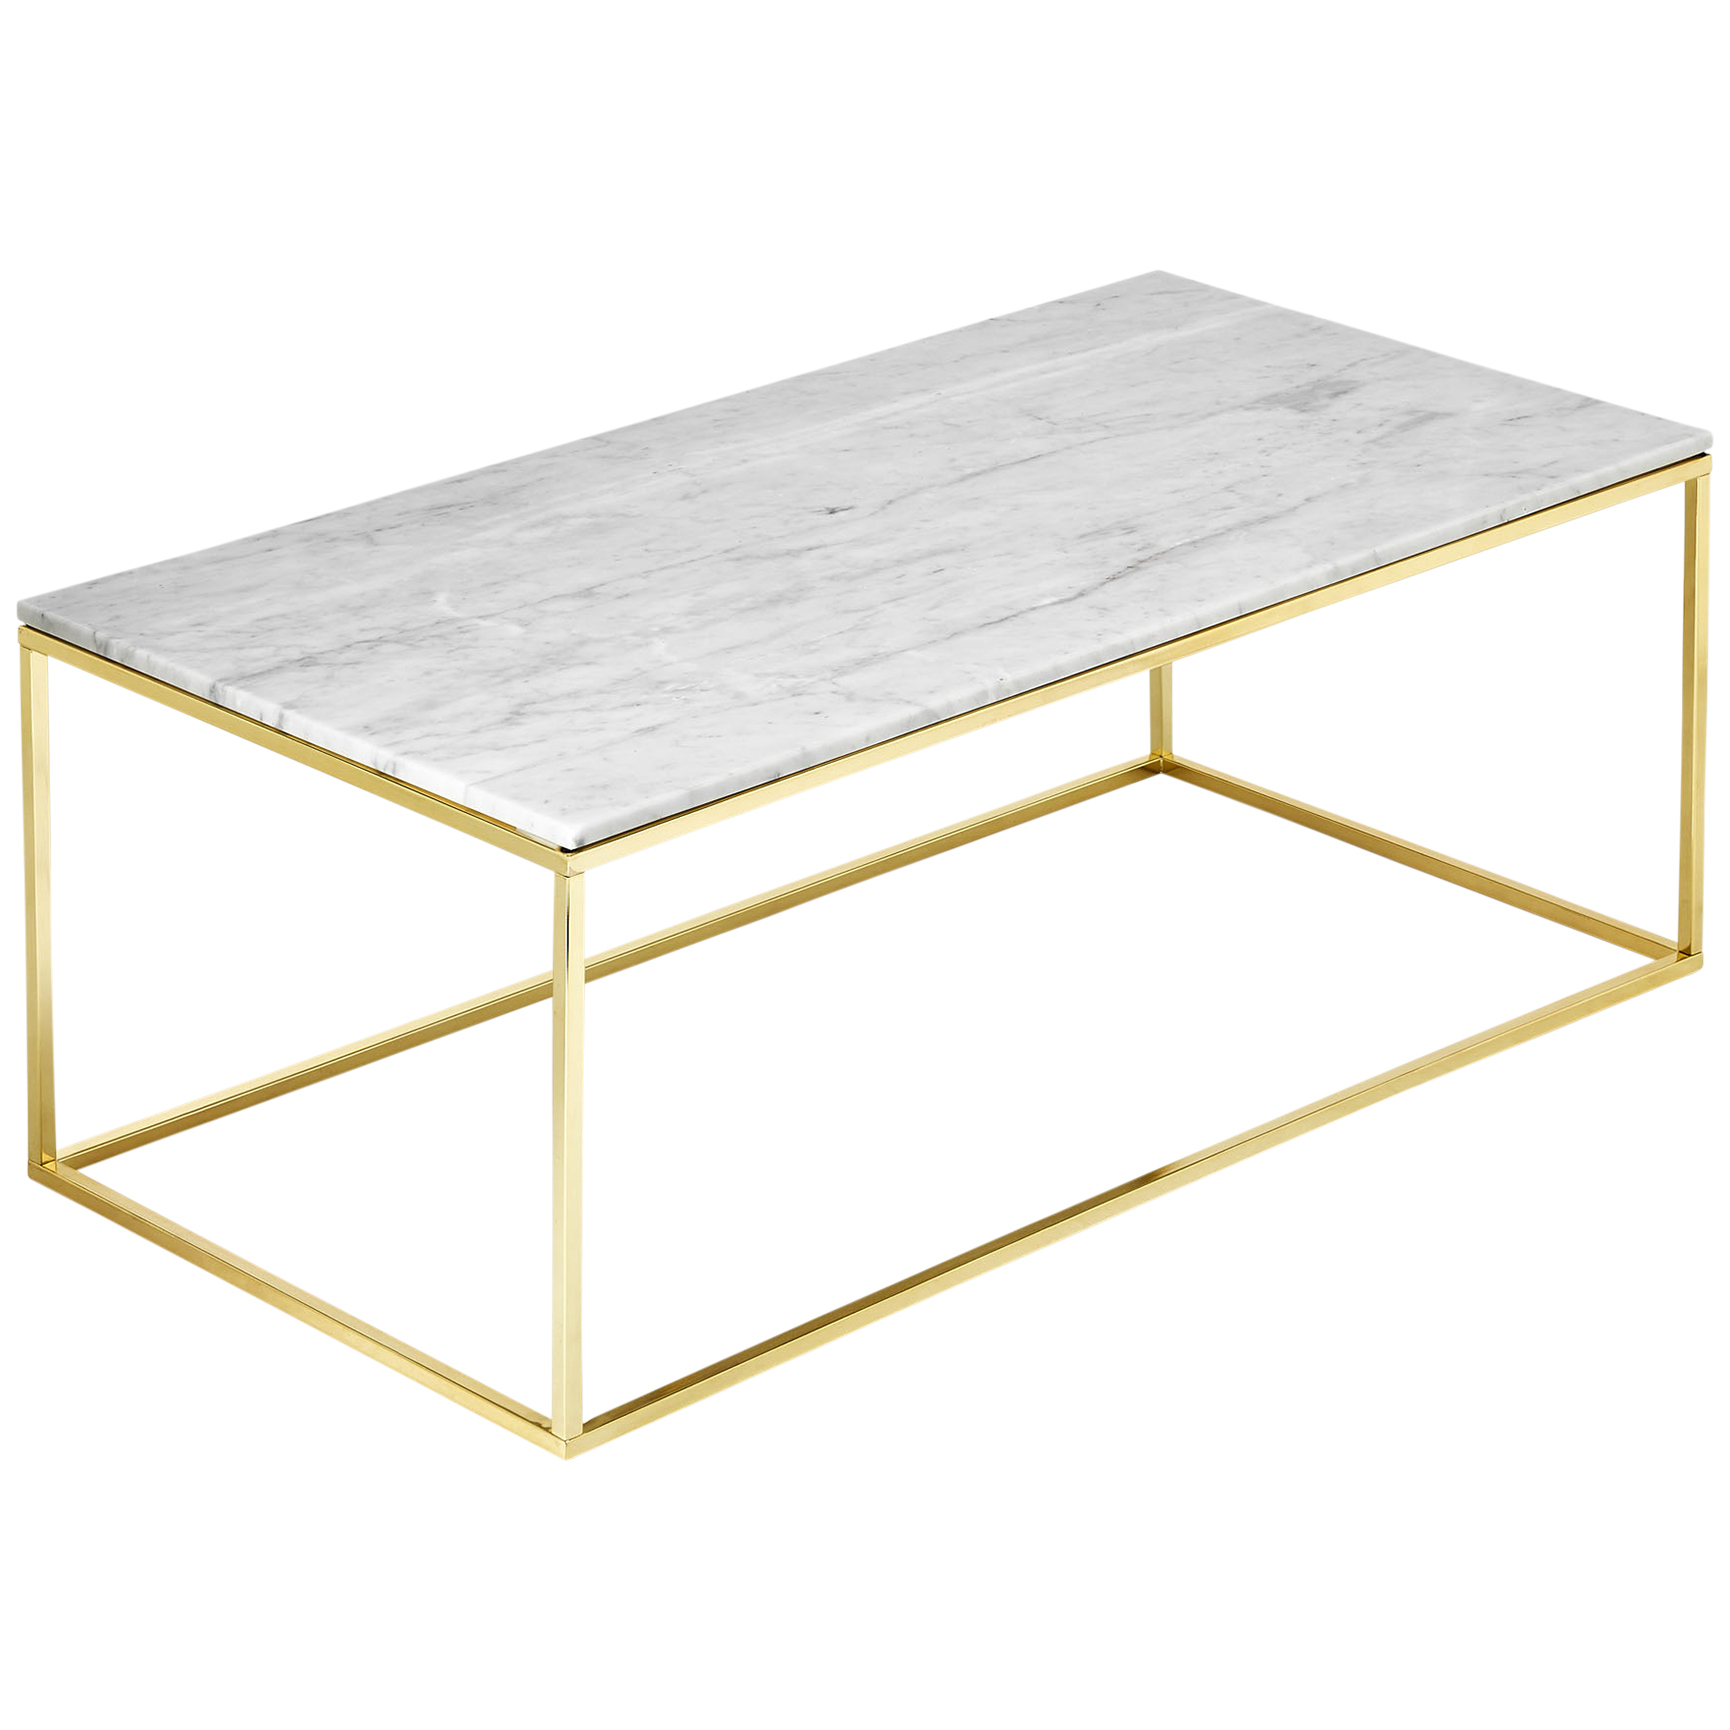 Marble Coffee Table Excellent White Marble Coffee Tables With Marble Coffee Table Perfect Best